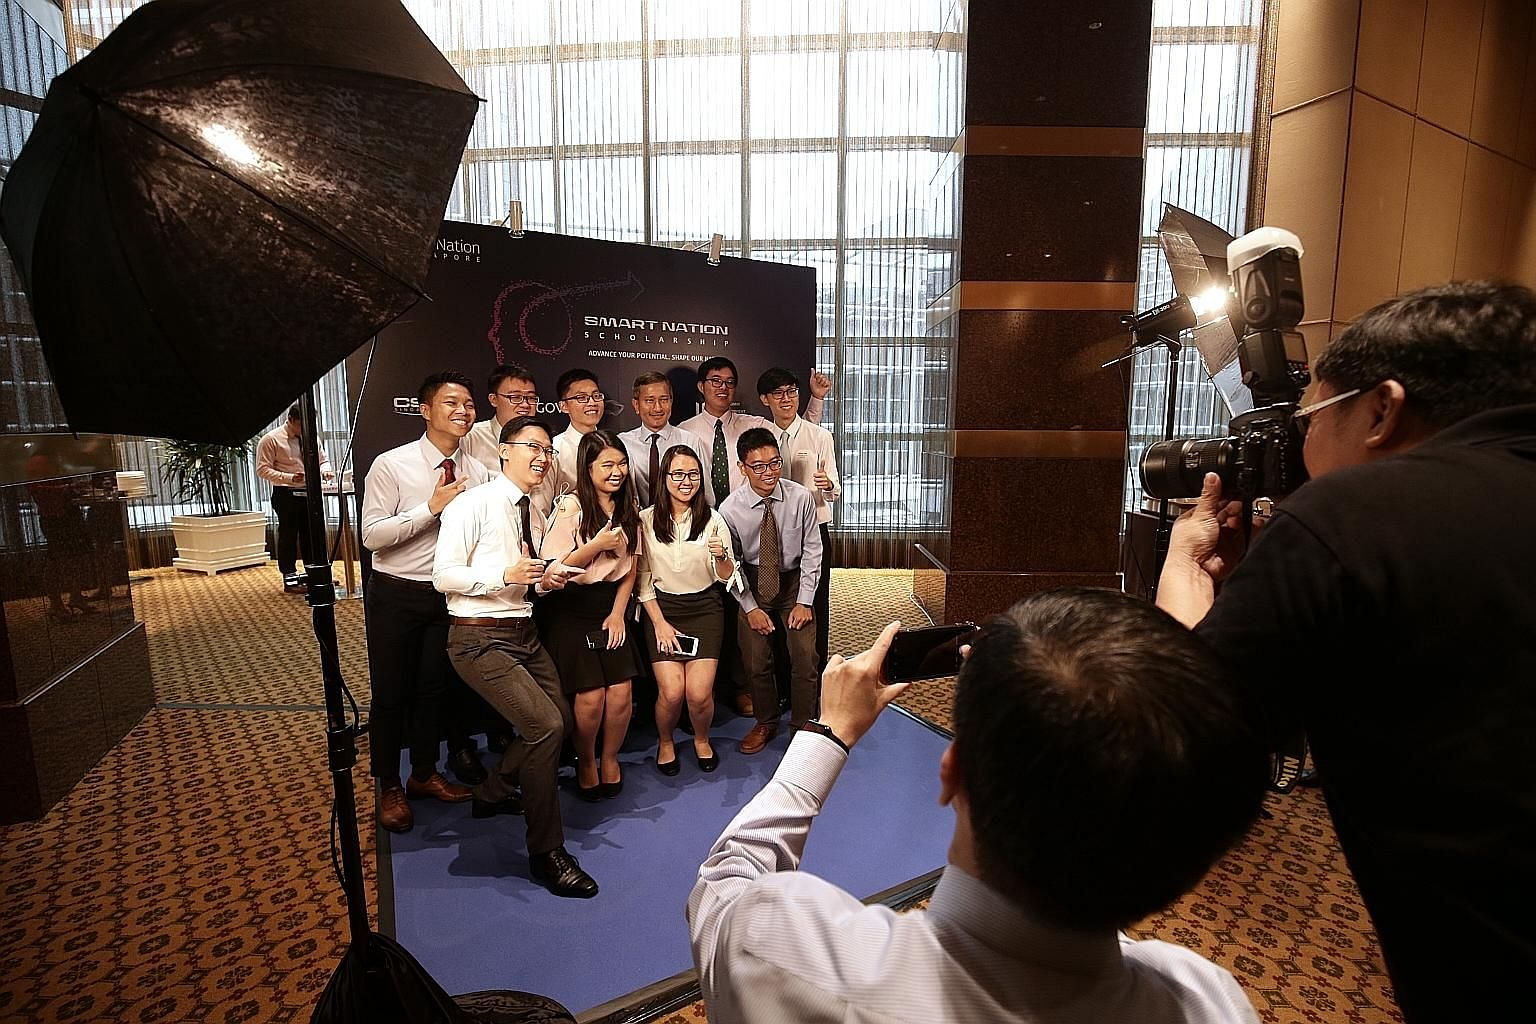 Minister-in-charge of the Smart Nation Initiative Vivian Balakrishnan (back row, fourth from left) with the pioneer batch of Smart Nation Scholarship recipients at last year's award ceremony. To build a Digital Government, we need to hire peak techni